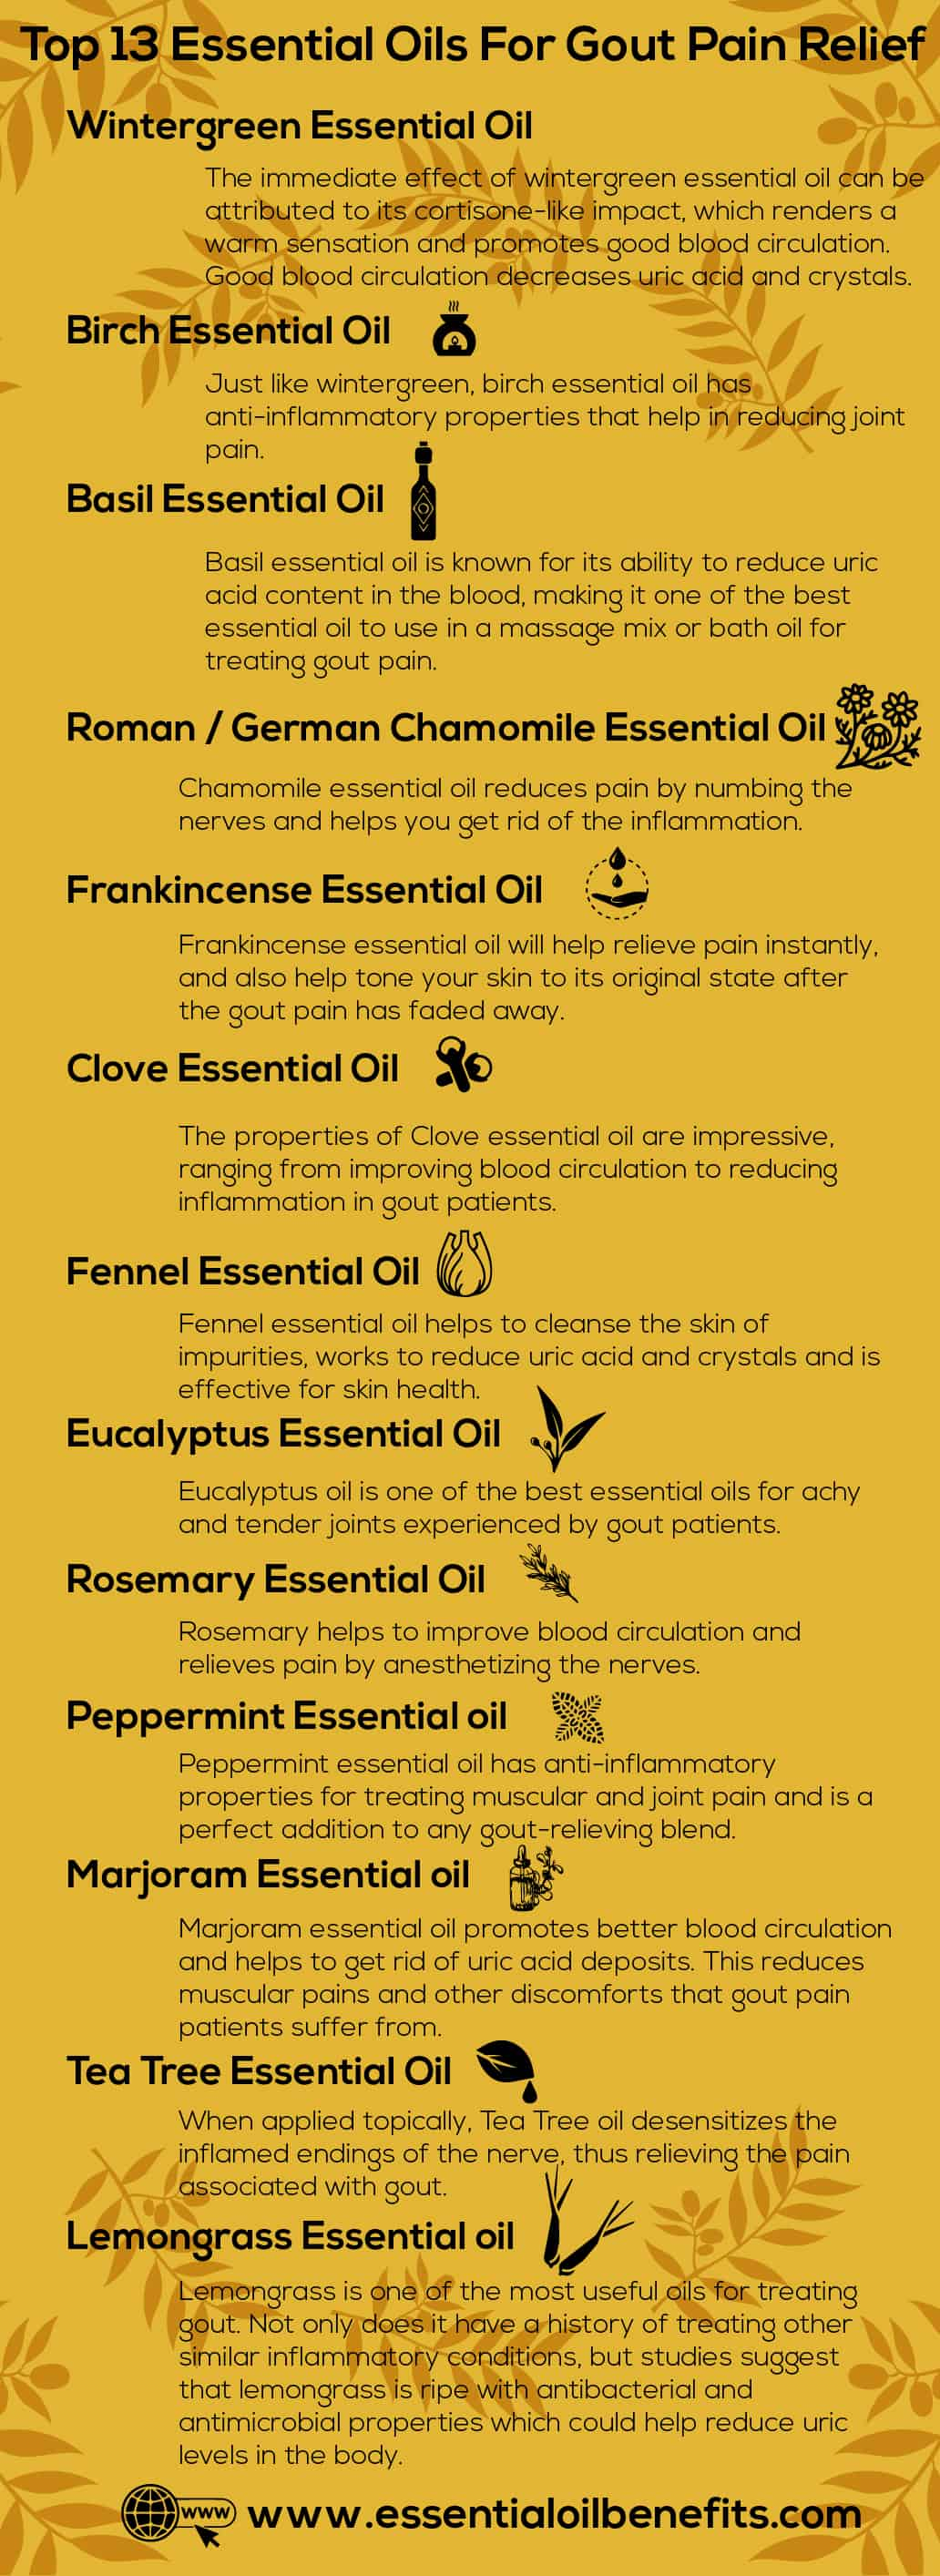 Essential Oils for Gout Pain Relief